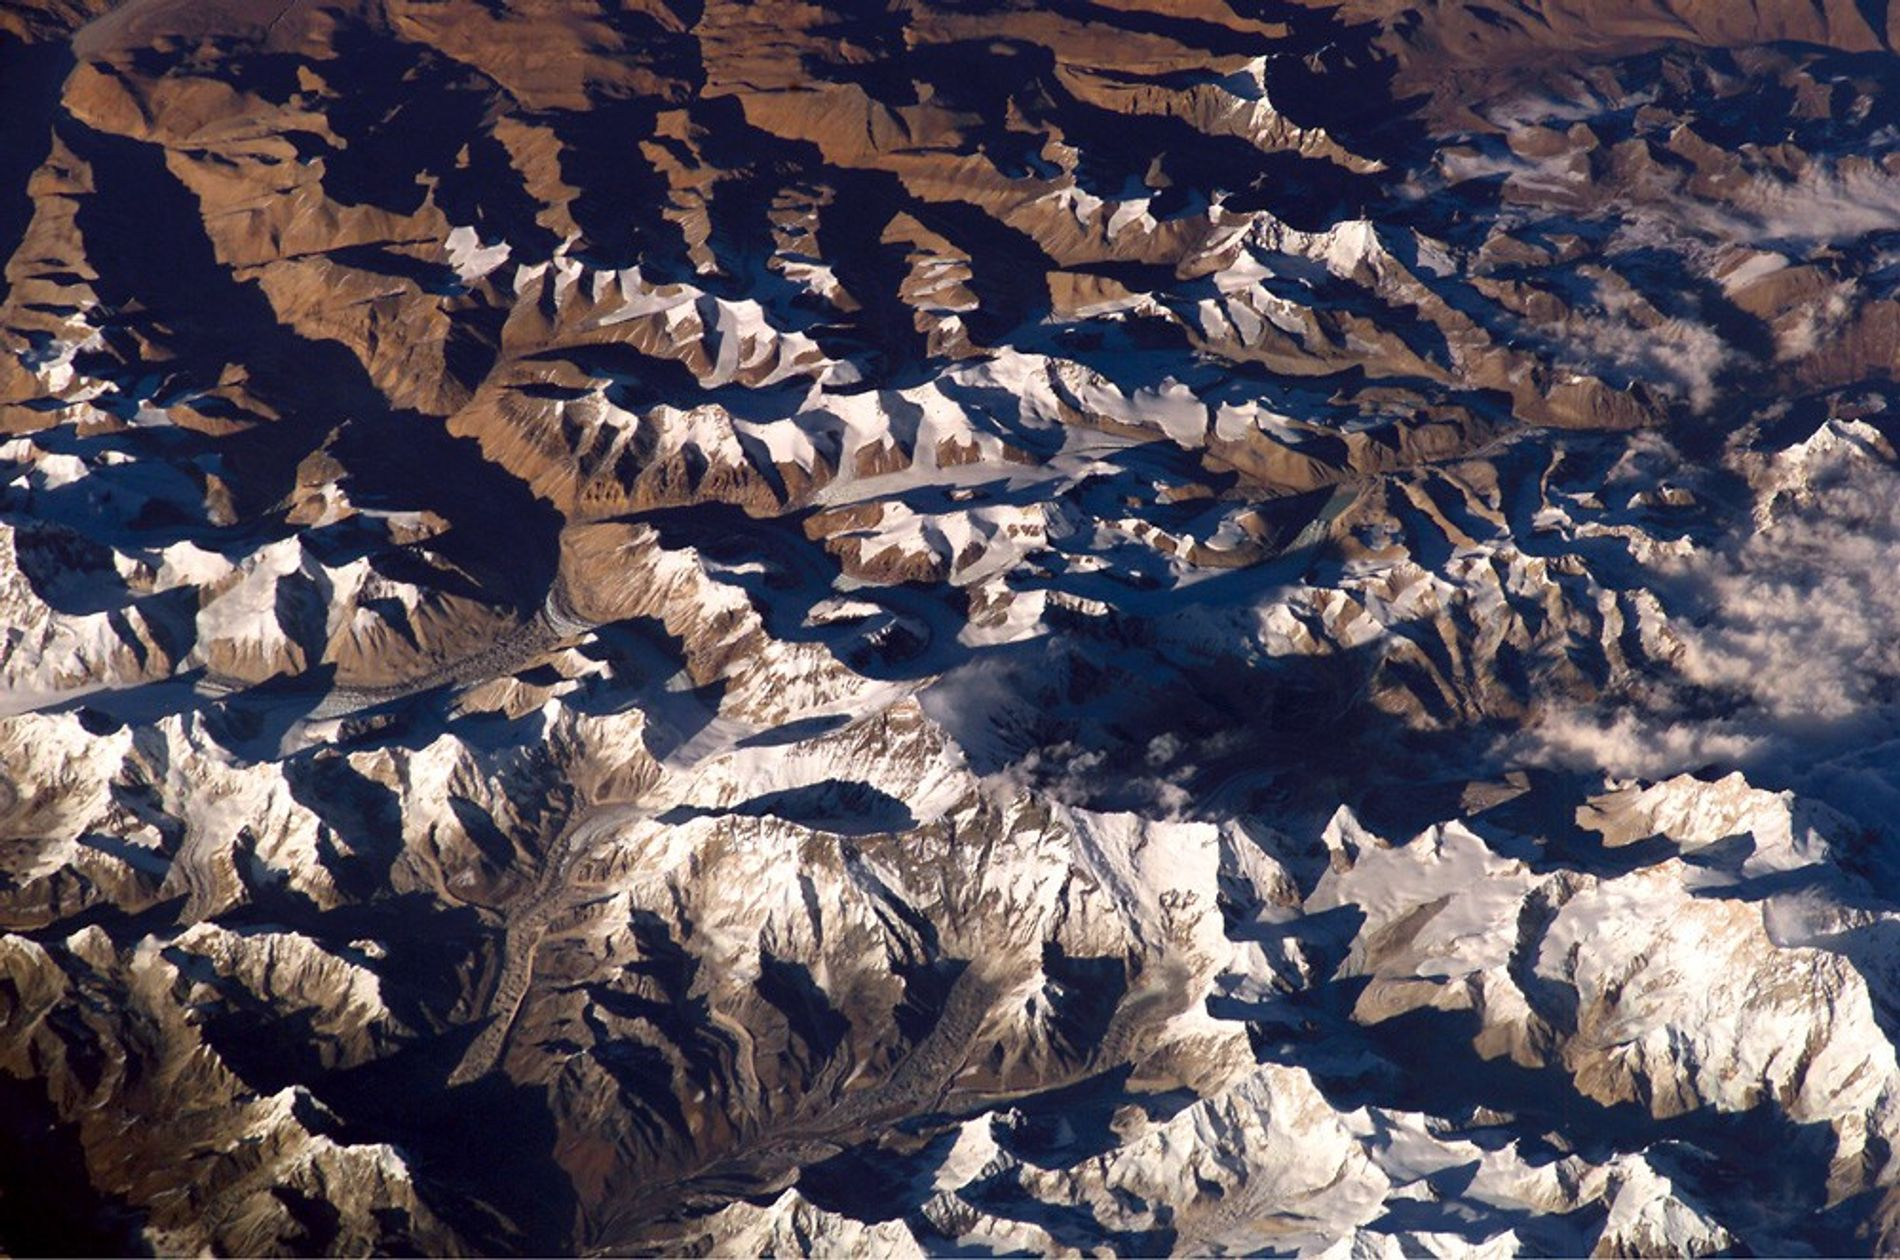 Shadows dance across the Himalaya mountain range in a picture taken by an astronaut on the ...